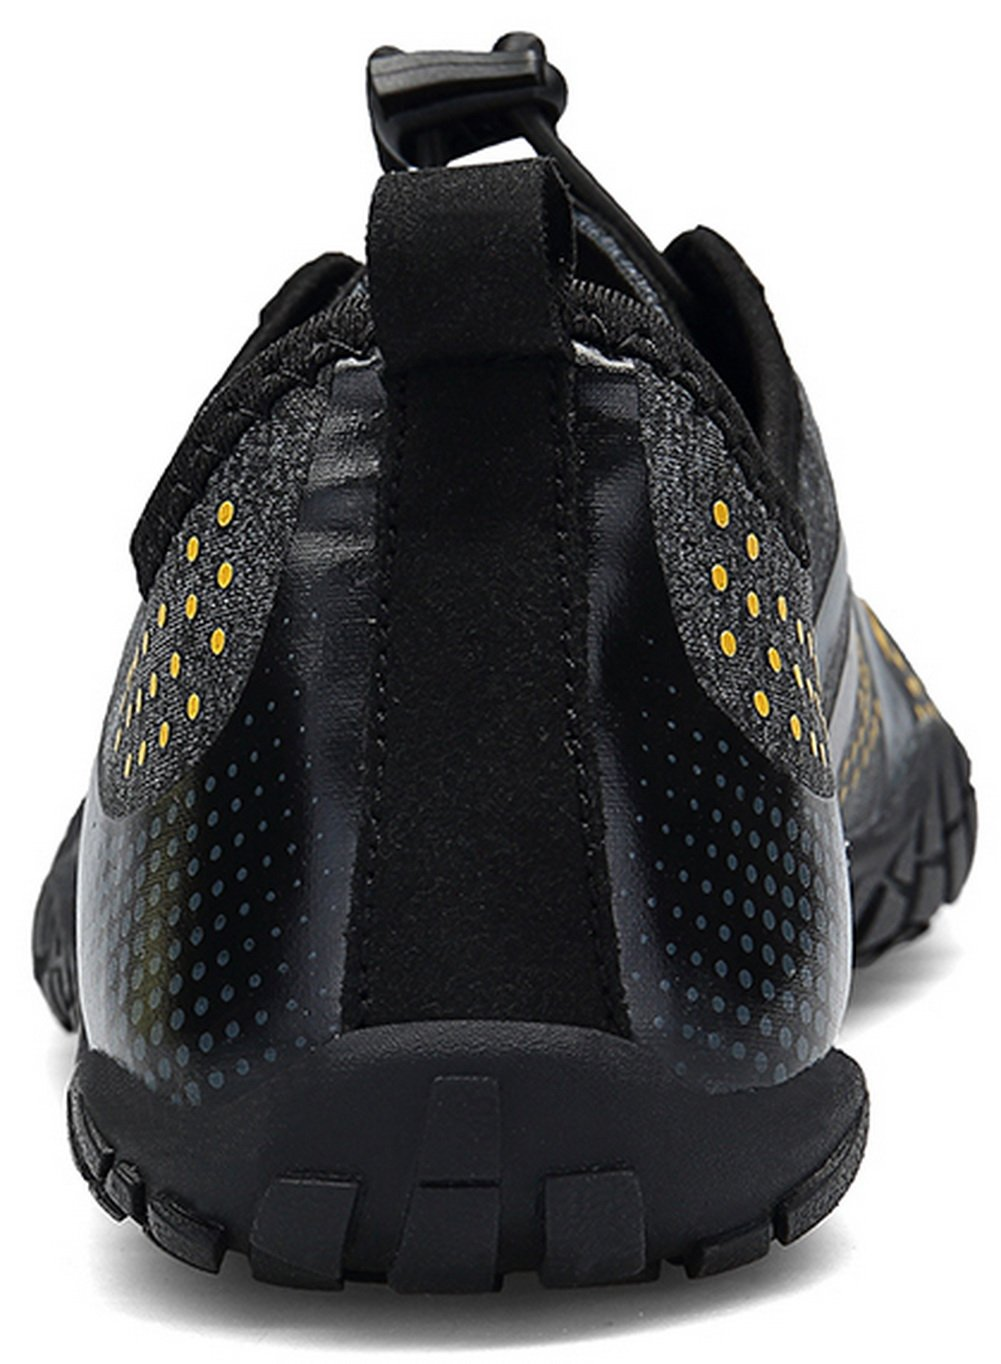 JOOMRA Unisex Barefoot Water Shoes Breathable Quick Dry Gym Athletics for Running Walking Fishing Camp Outdoor Minimus Training Beach Aqua Shoes Black 9.5 US Women's / 8 US Men's by JOOMRA (Image #4)